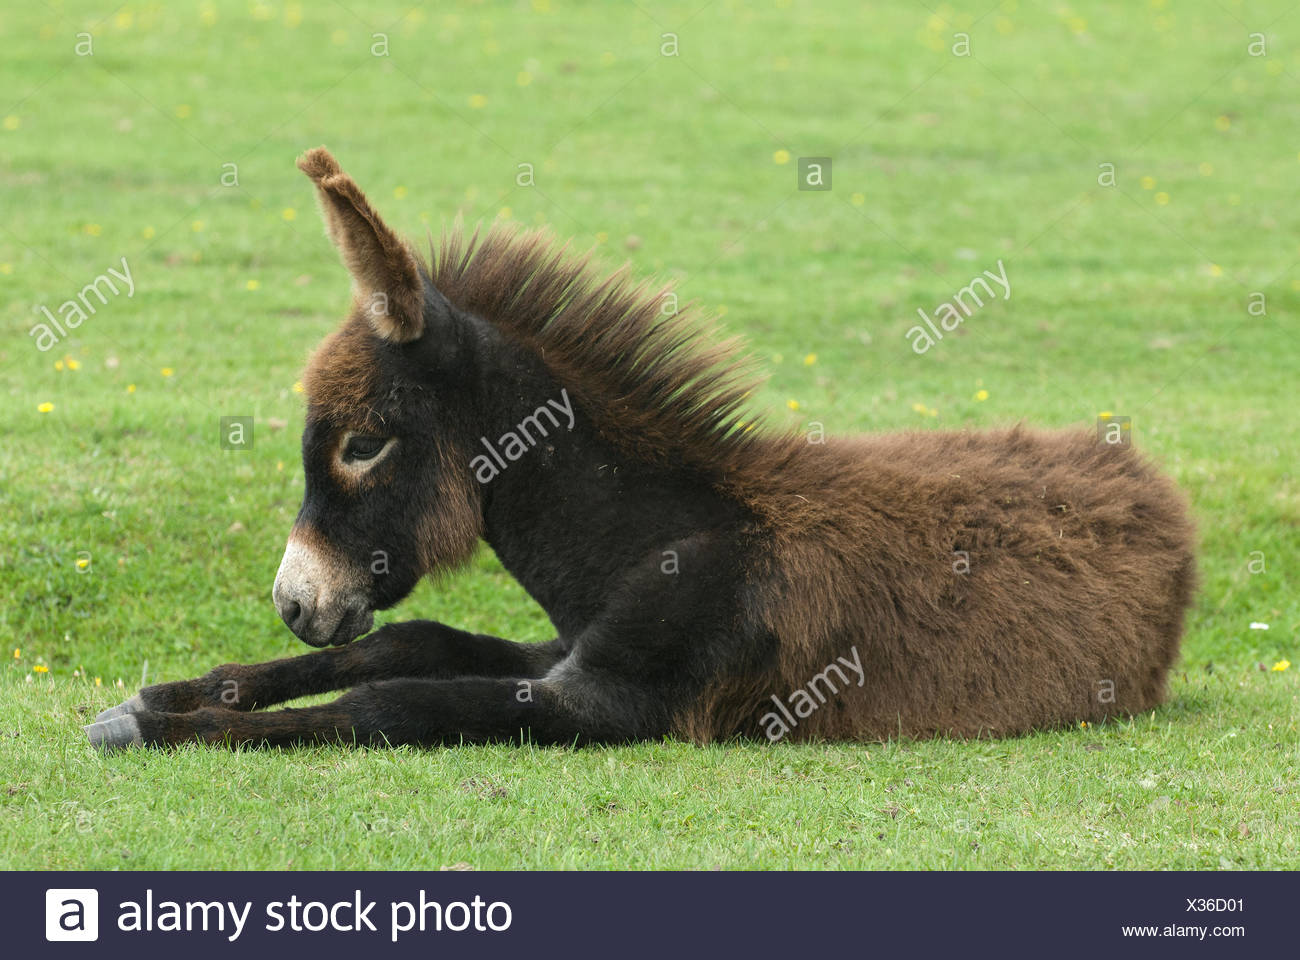 A donkey lying down in New Forest Wildlife Park. - Stock Image